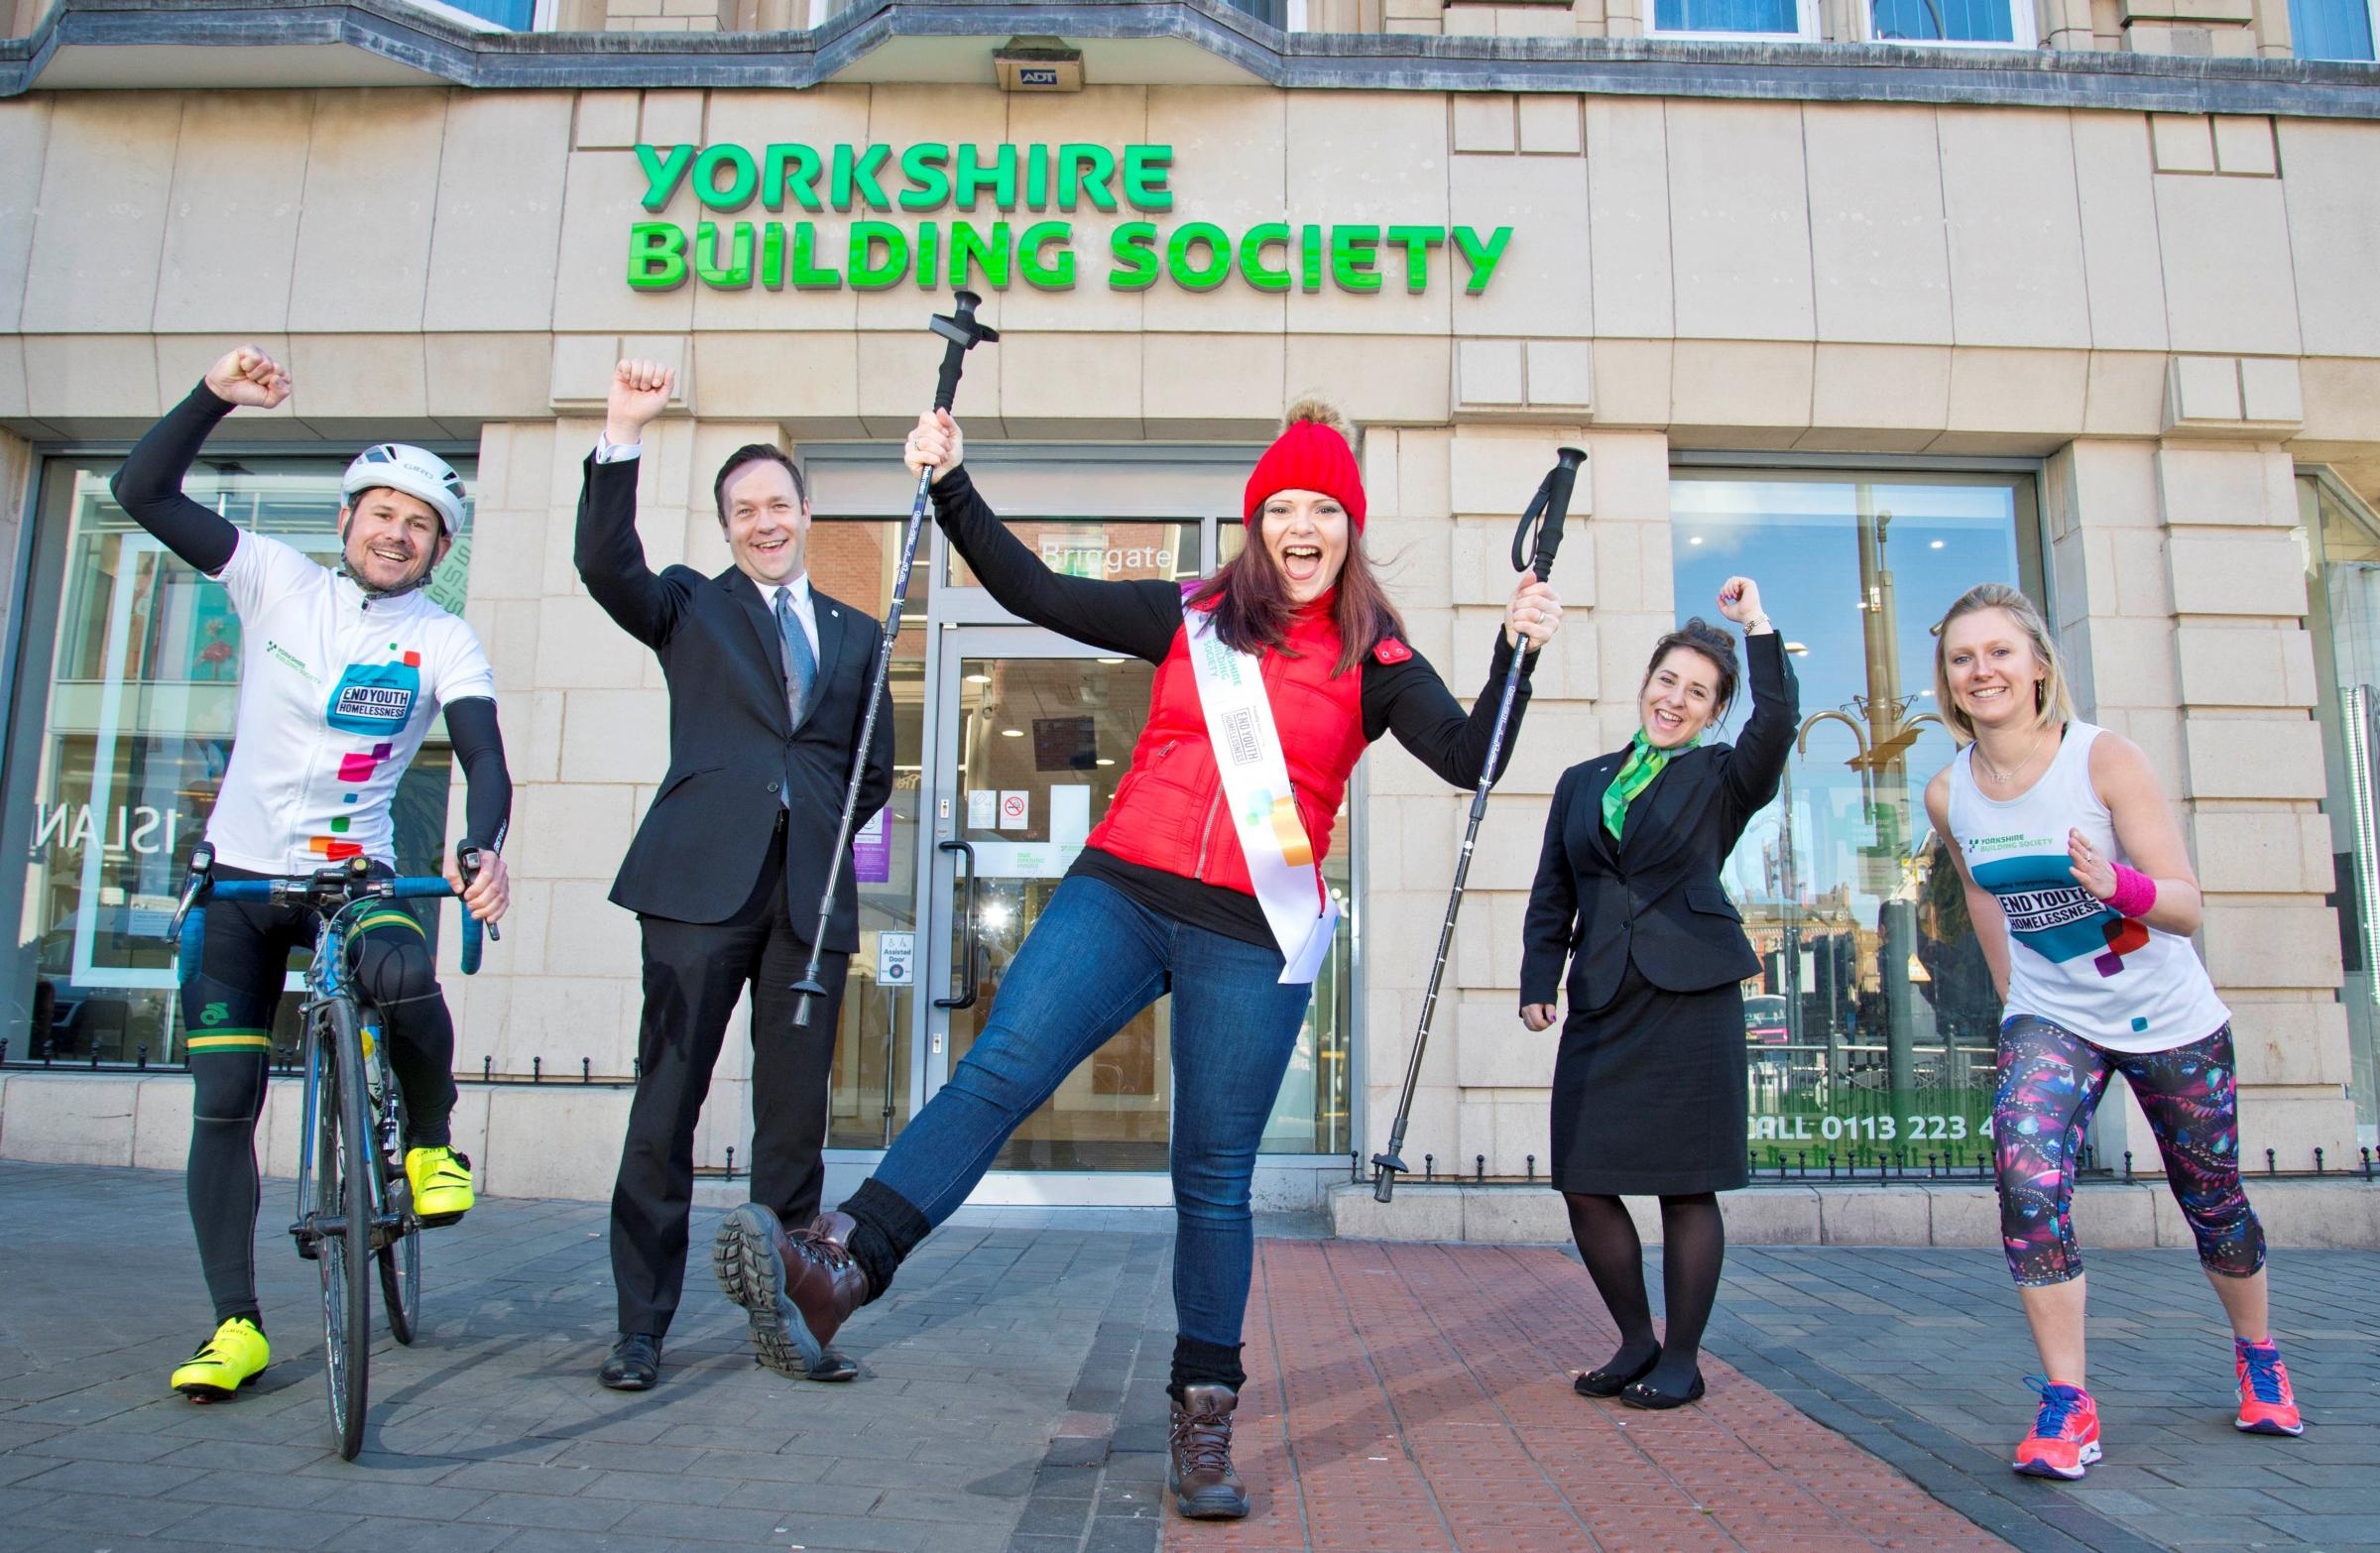 Staff from Yorkshire Building Society get ready to support homeless charity. Photo: Richard Walker